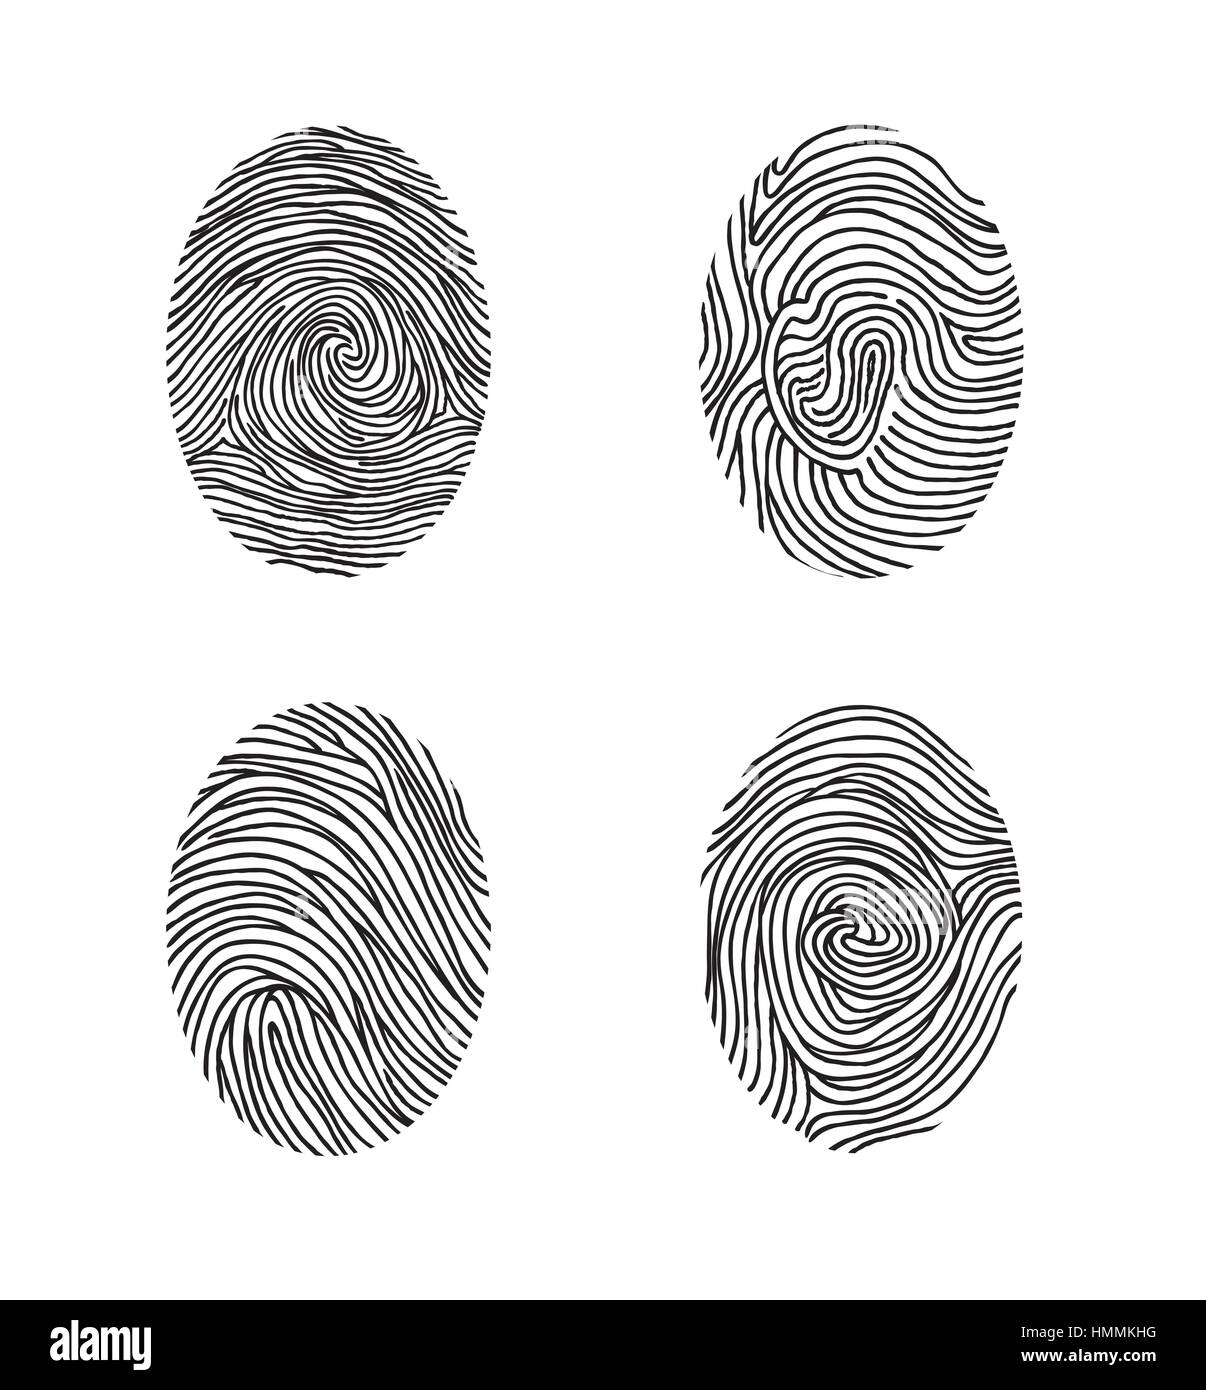 Fingerprint set. Abstract lswirl line decor elements with fingers print - Stock Image